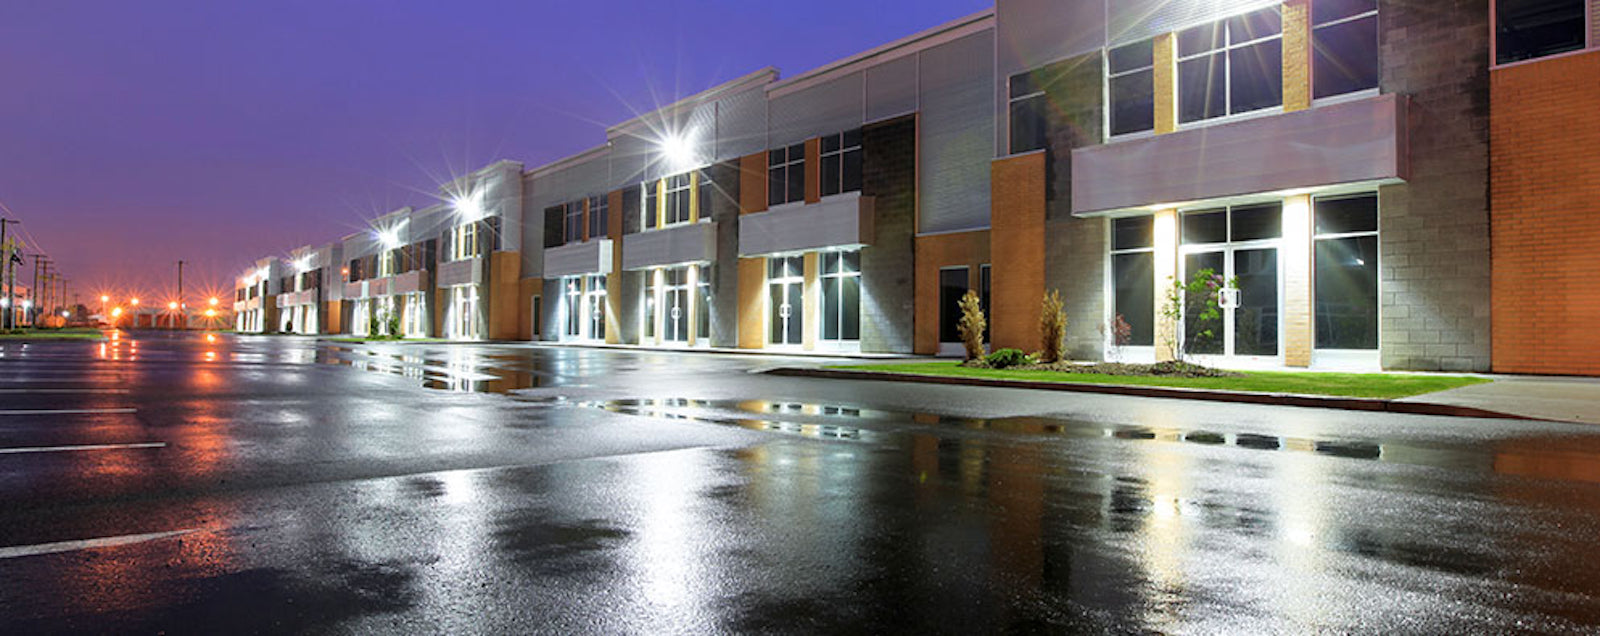 Outdoor Lighting - Commercial & Residential Outdoor Lights